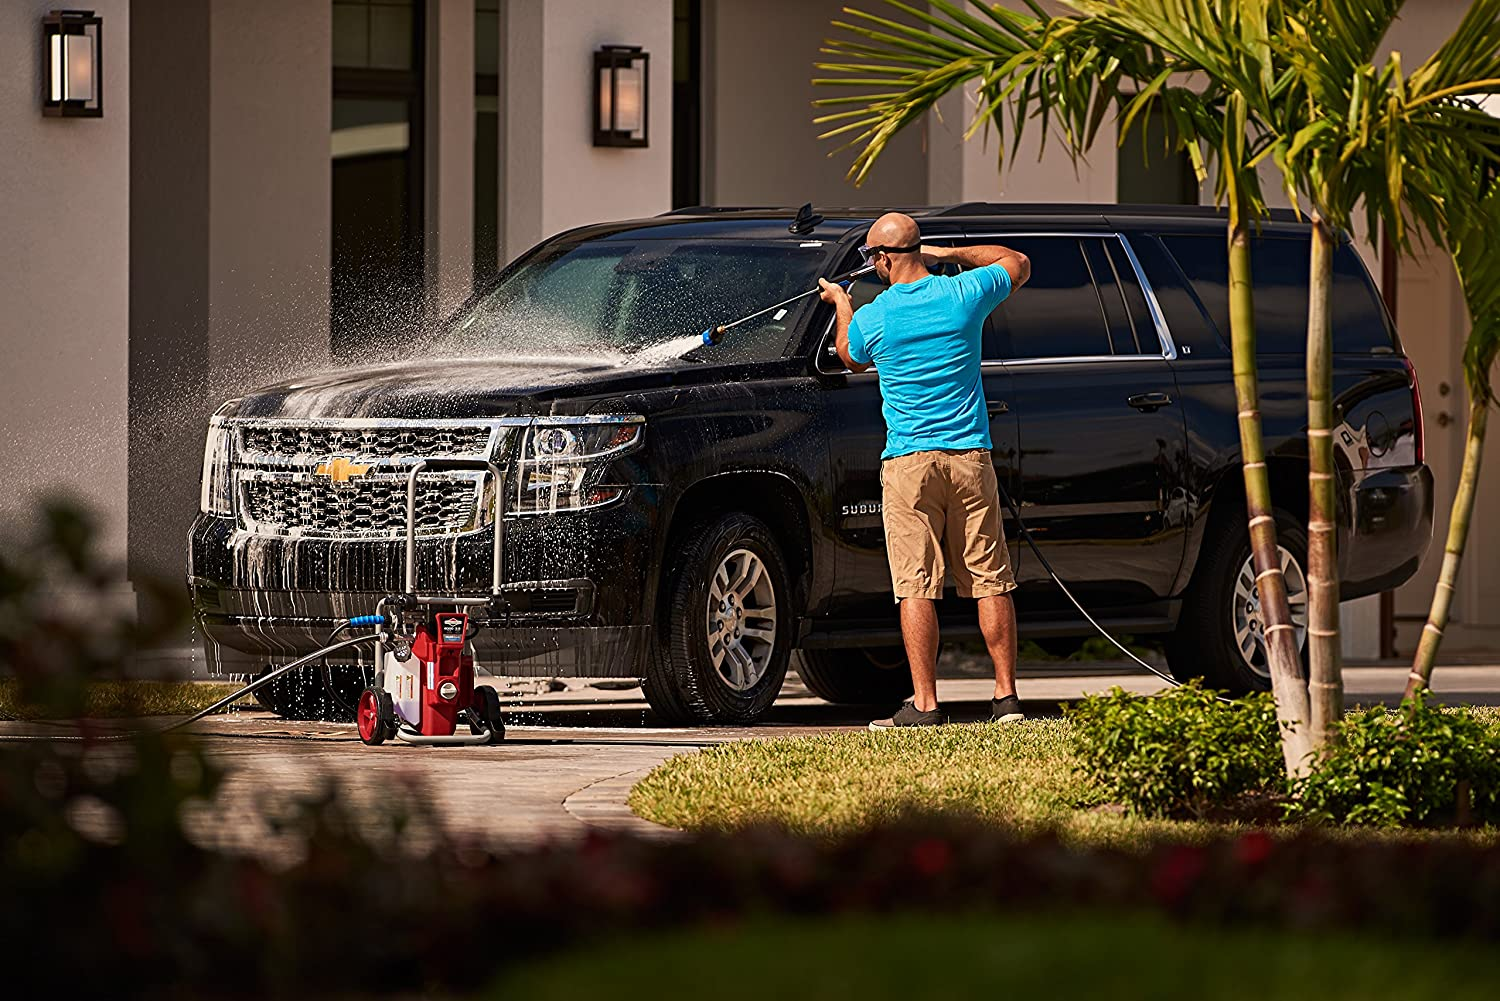 Best Pressure Washer Reviews and Buying Guide for 2021 2